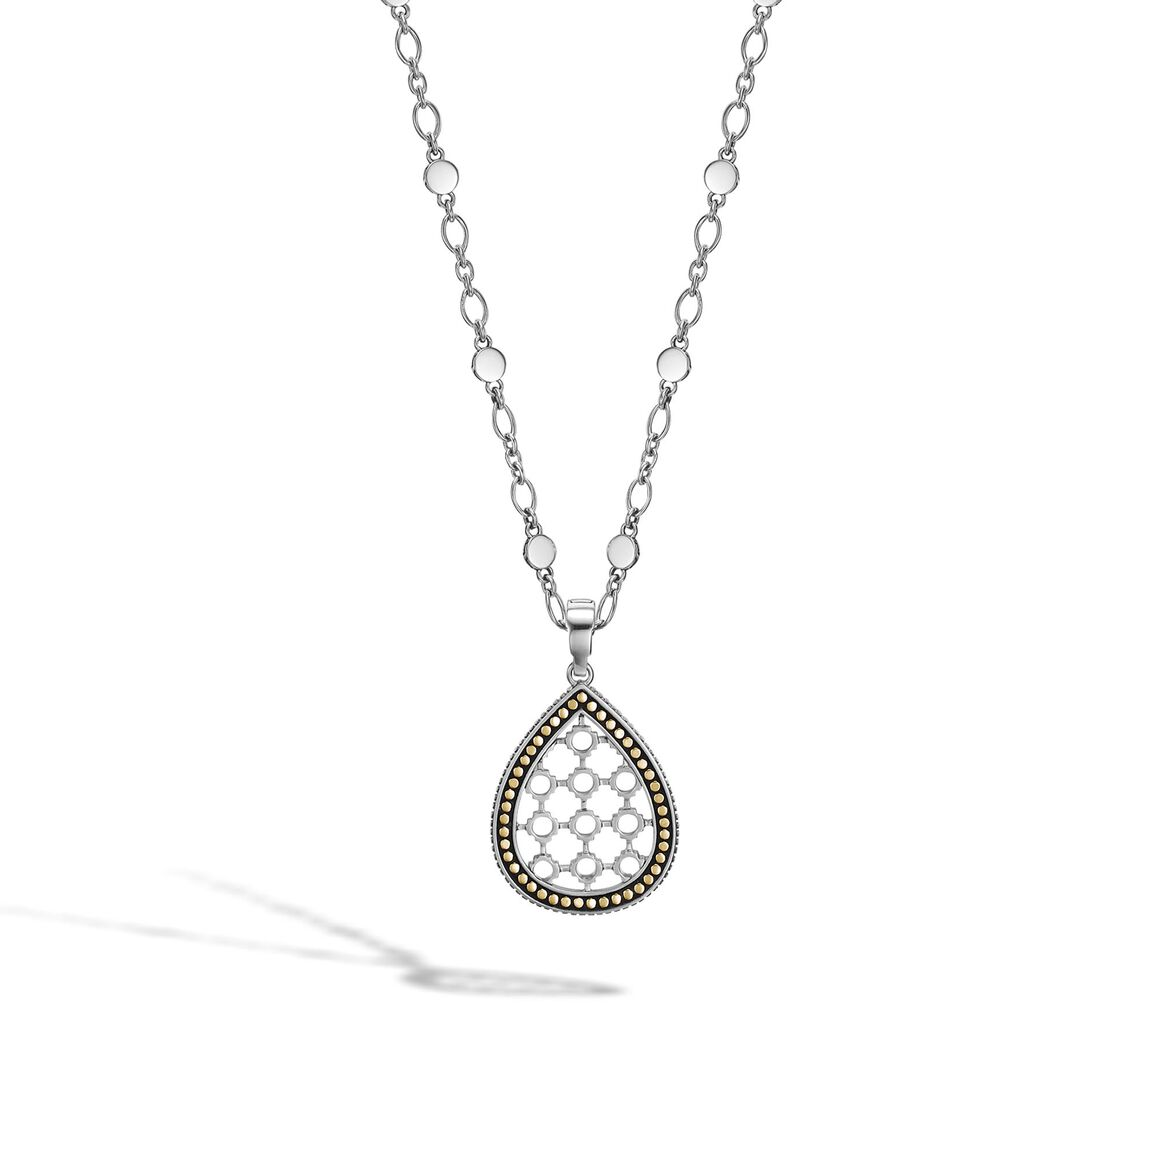 Dot Drop Pendant Necklace in Silver and 18K Gold